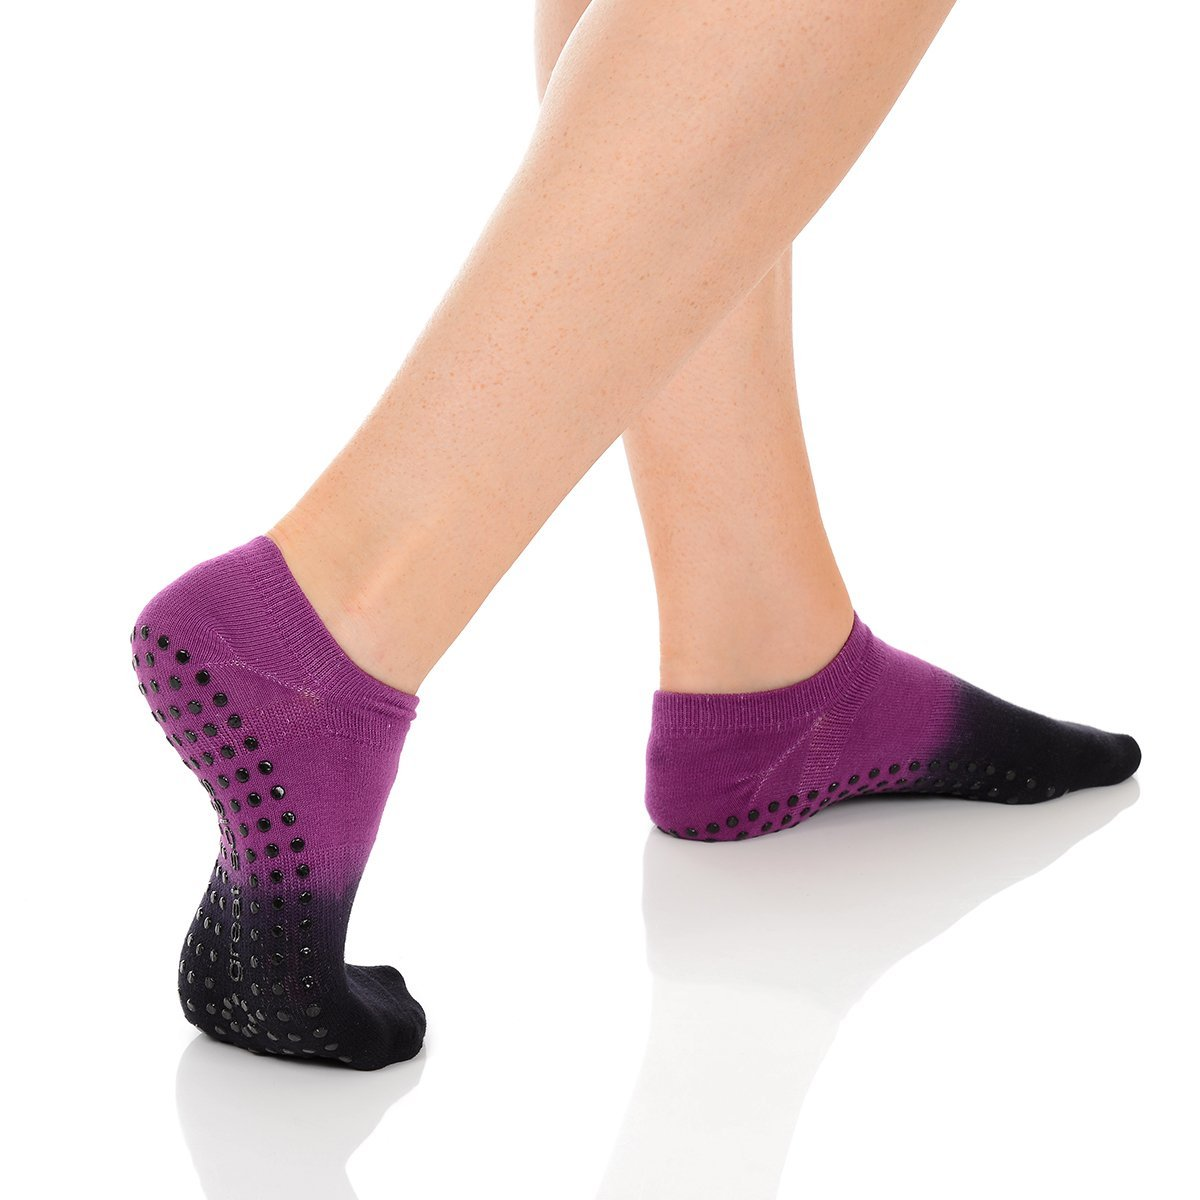 Great Soles Ombre Dyed Grip Socks for Women - Non Slip Yoga Socks for Pilates, Barre, Ballet (Berry/Black) by Great Soles (Image #5)